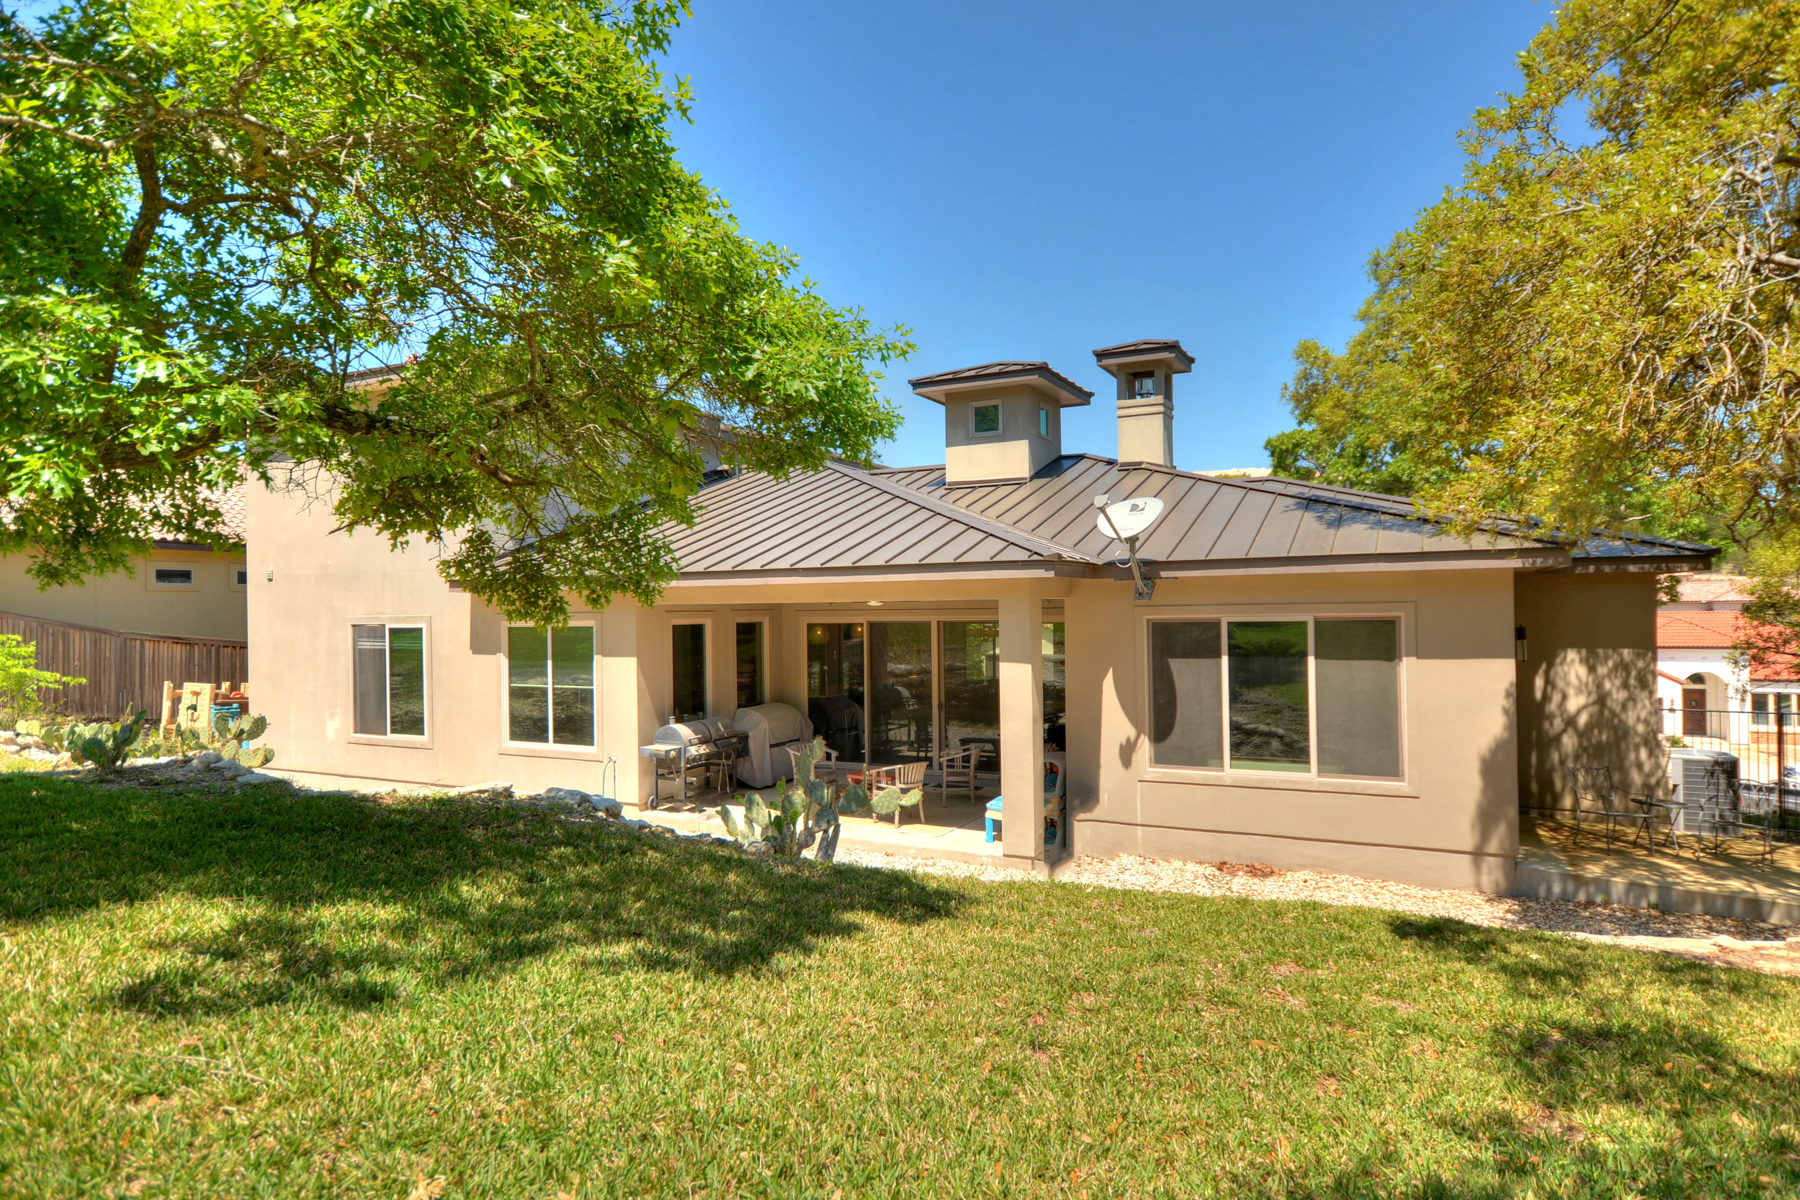 Additional photo for property listing at Stunning and Contemporary Home in Cresta Bella 7010 Cresta Bulivar San Antonio, Texas 78256 United States